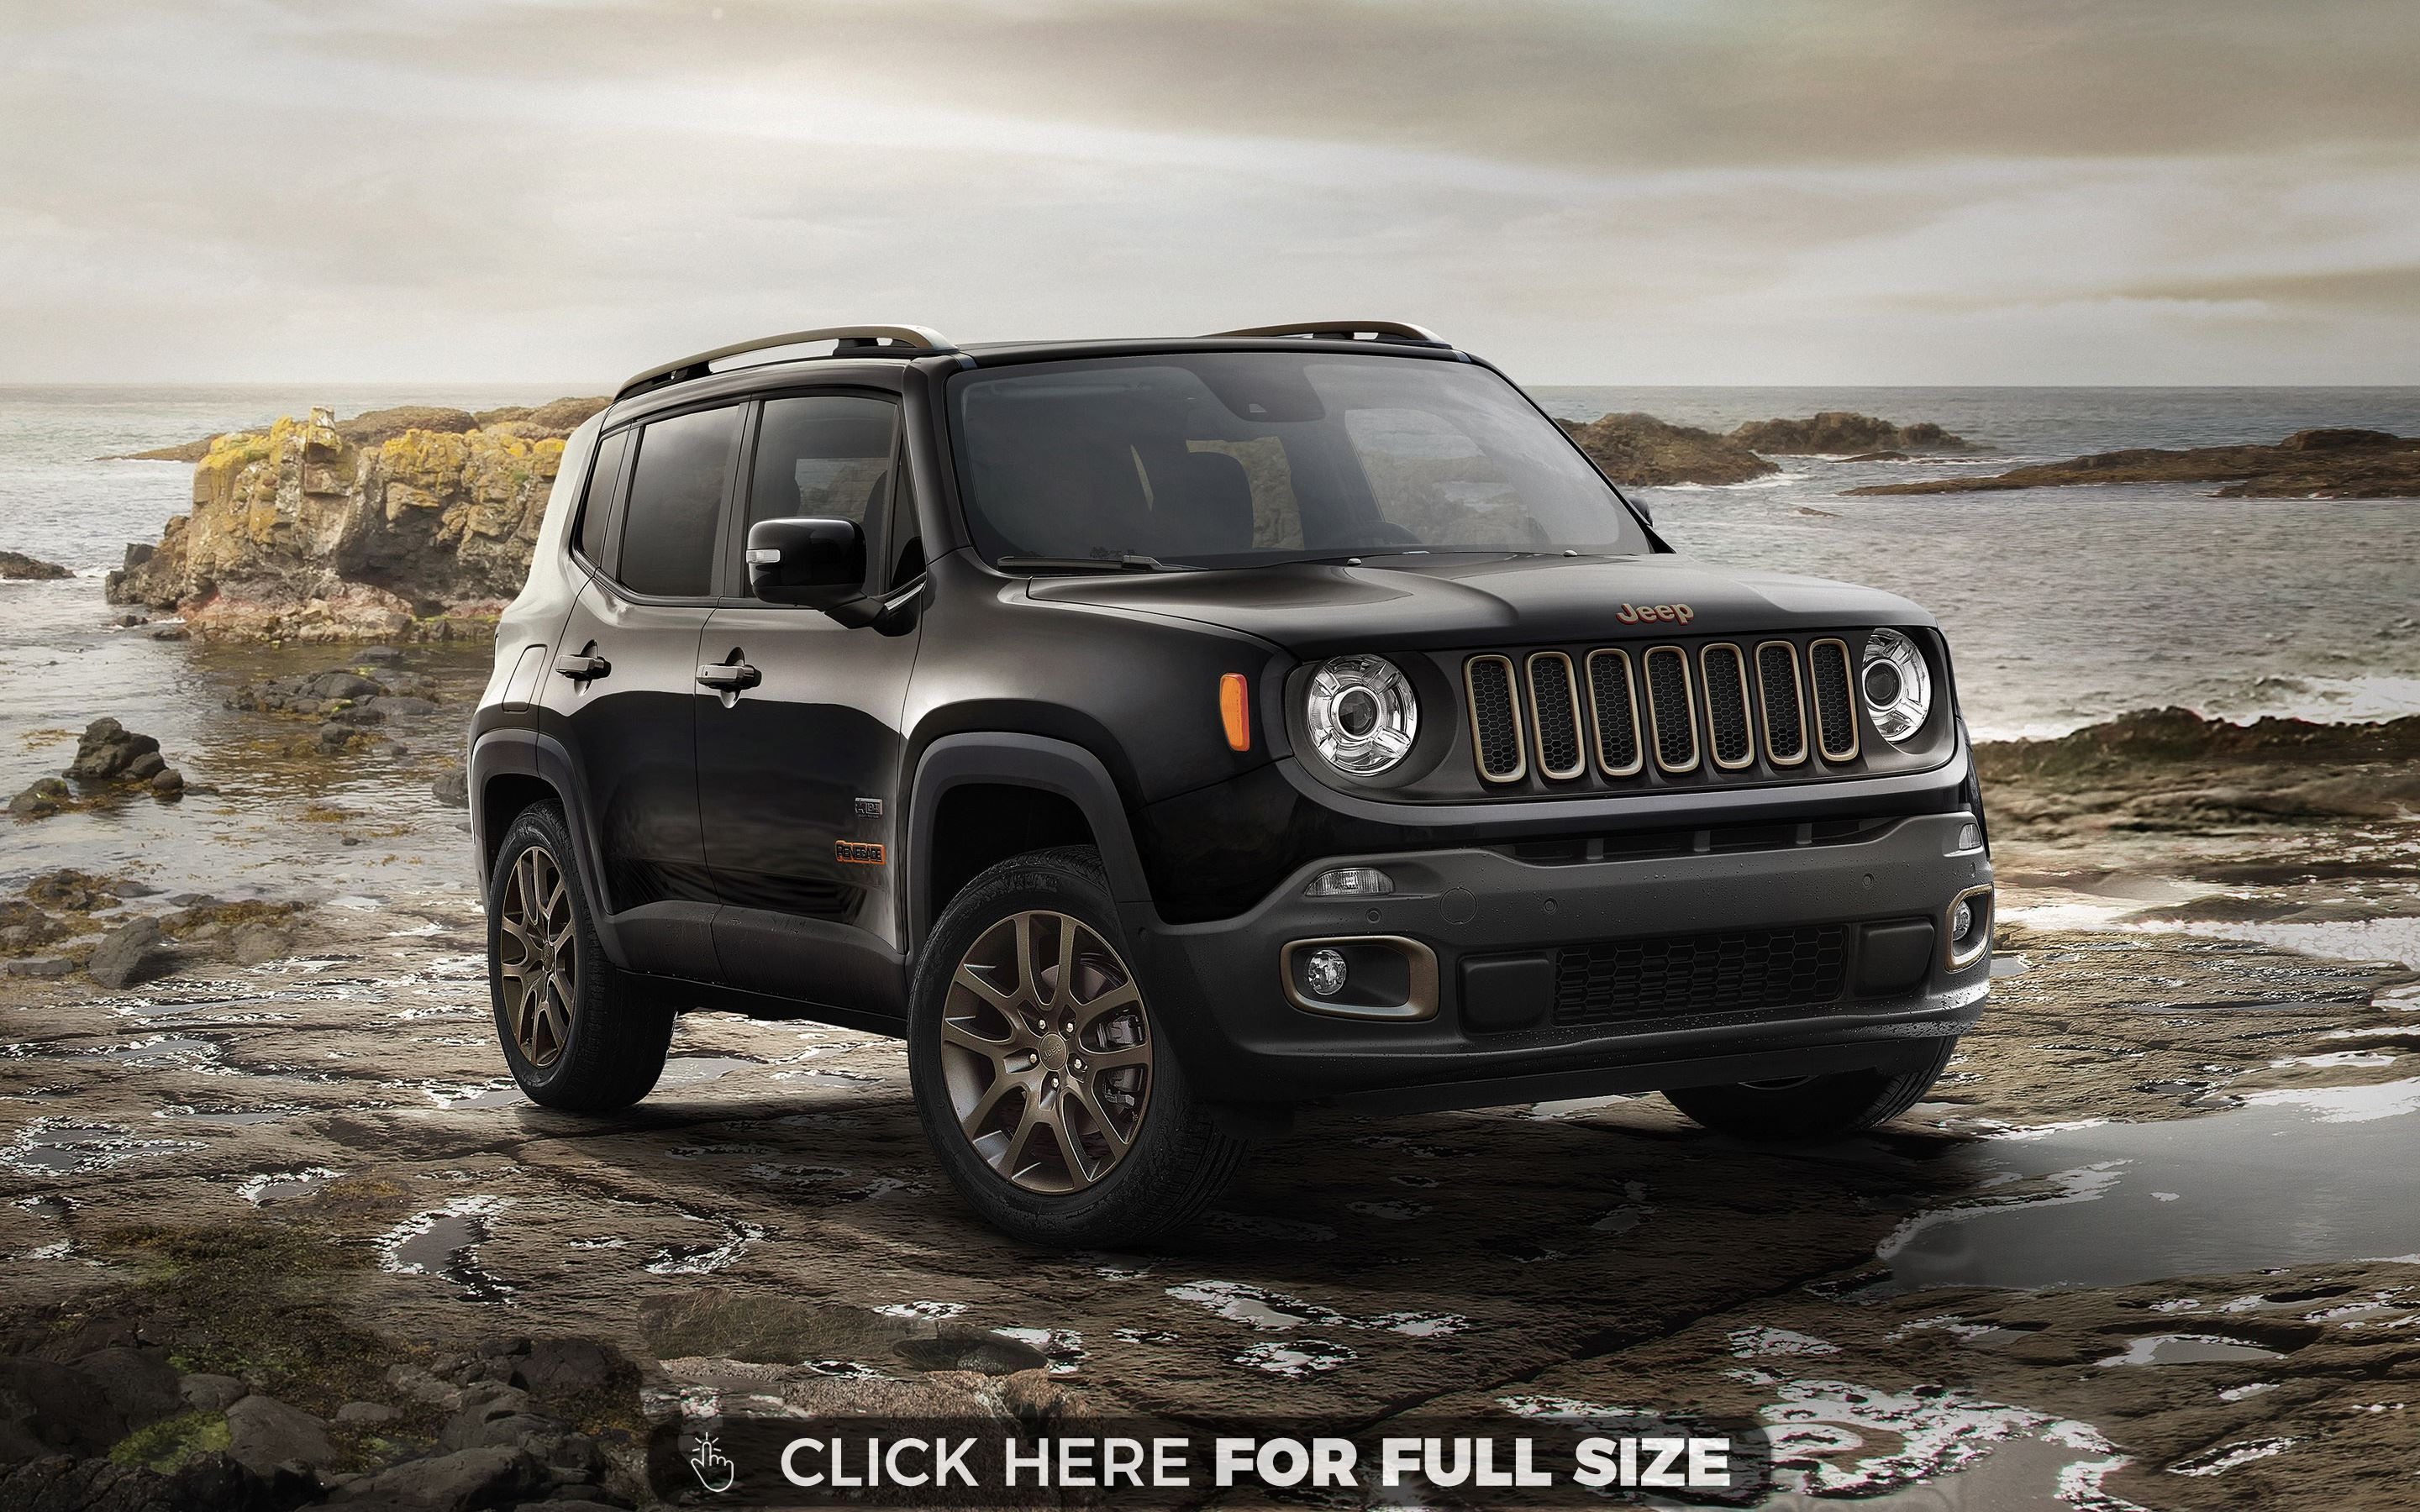 Jeep Renegade 75th Anniversary Model Jeep Renegade Auto Jeep Us Cars